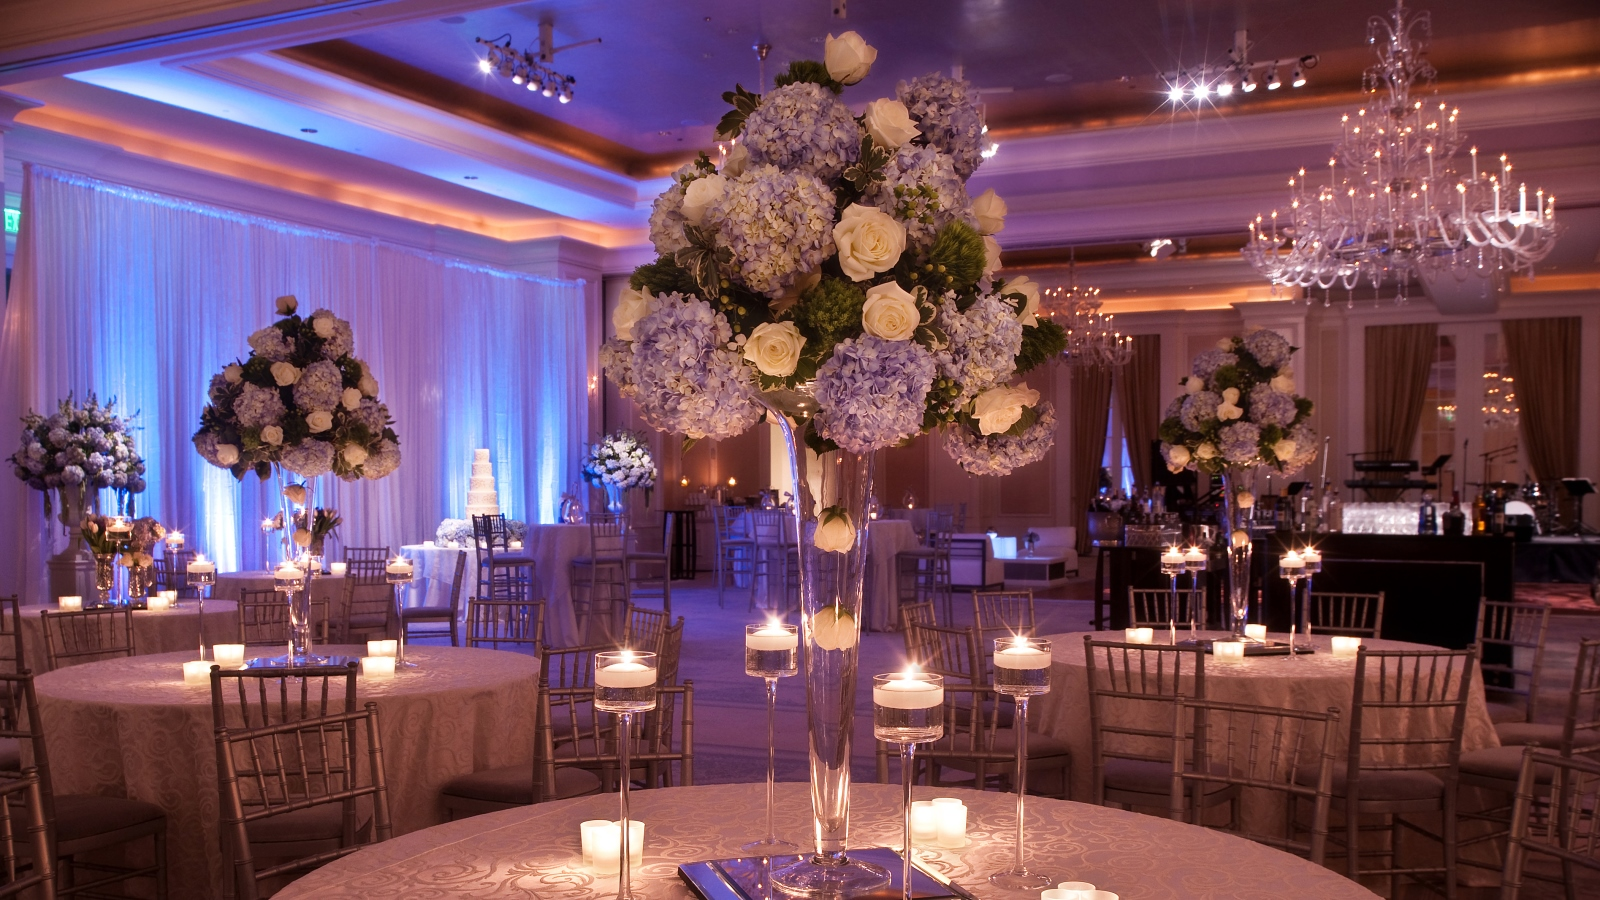 Astor Ballroom at The St. Regis Atlanta